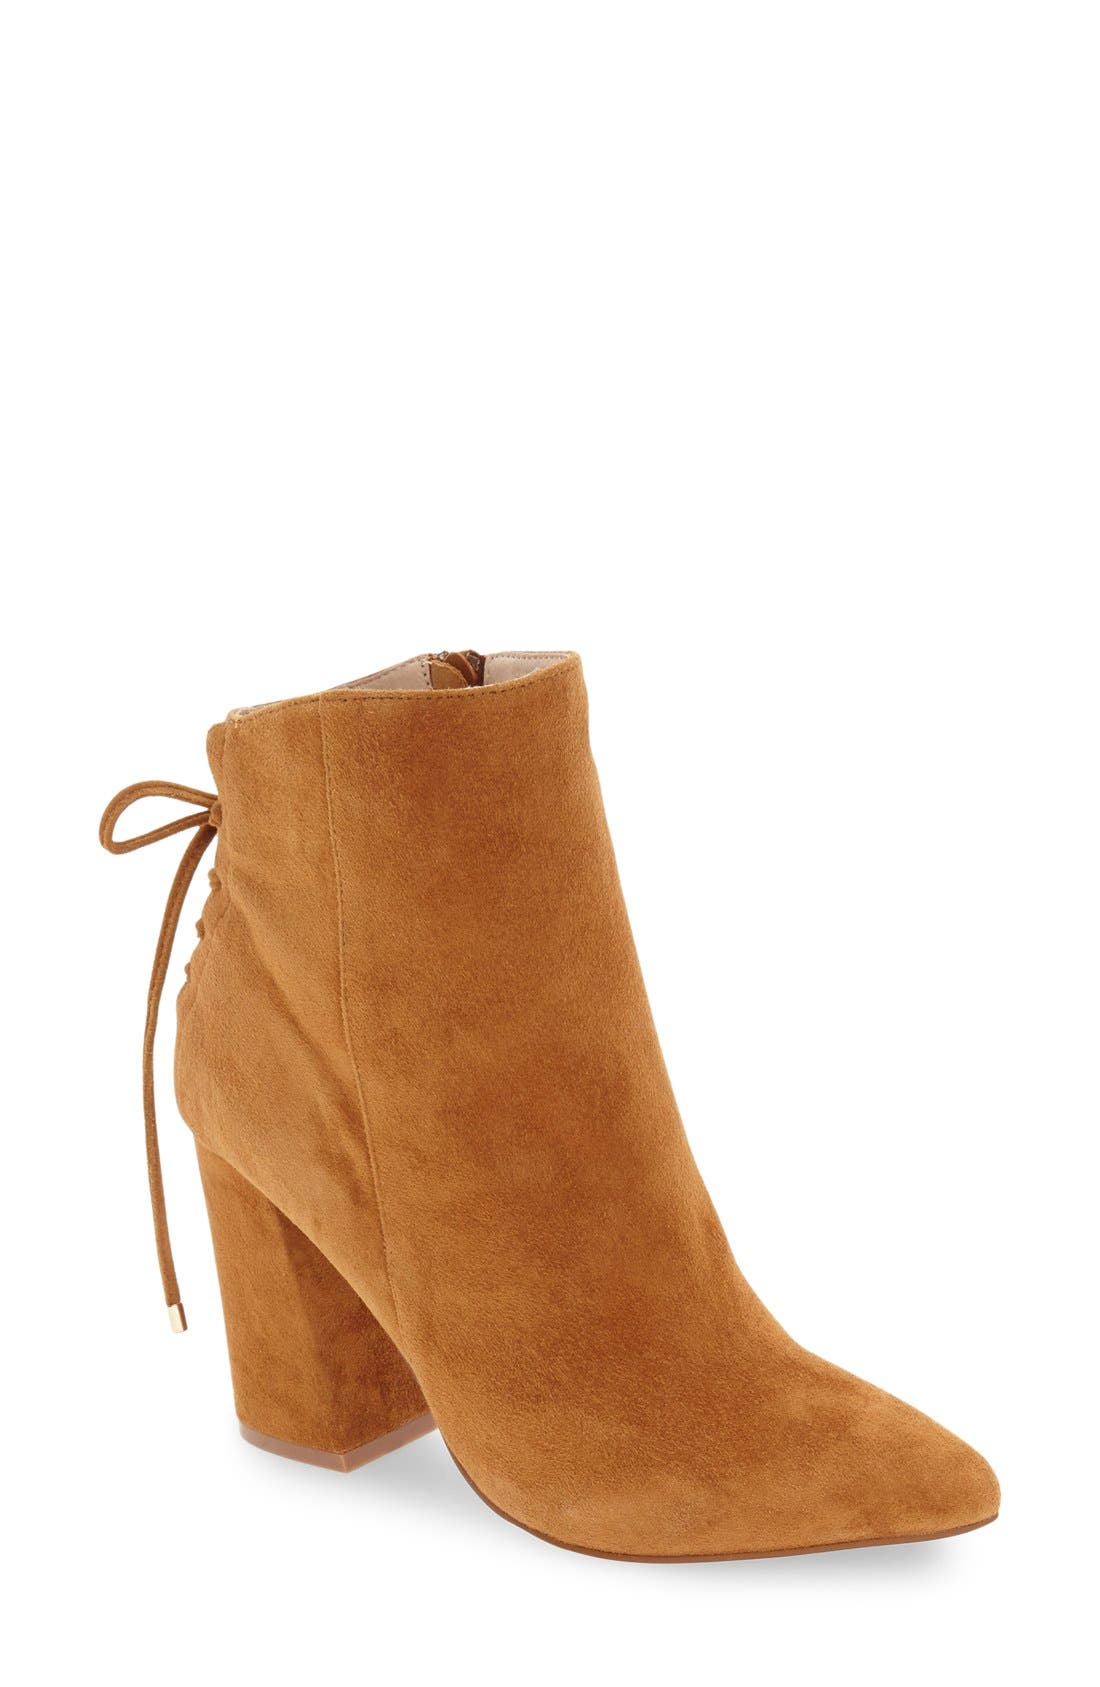 'Siren' Pointy Toe Bootie,                             Main thumbnail 1, color,                             Caramel Suede